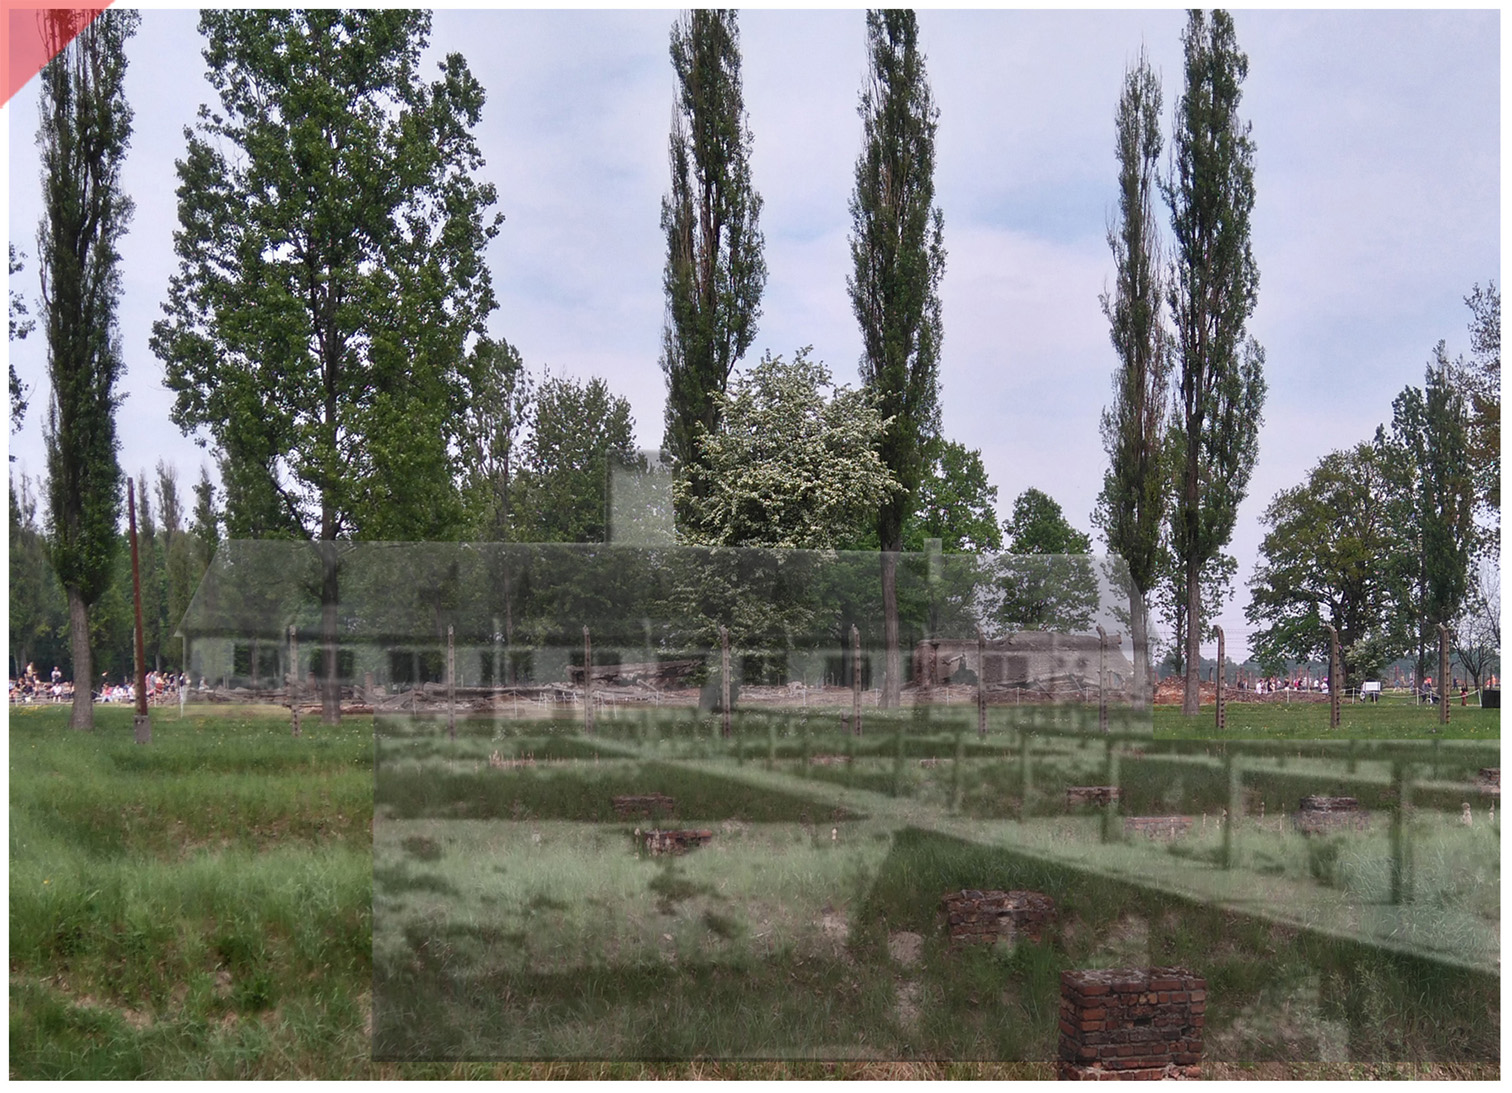 Auschwitz-Birkenau-Krematorium-2-II-superimpose-now-then-1943-1944-Photo